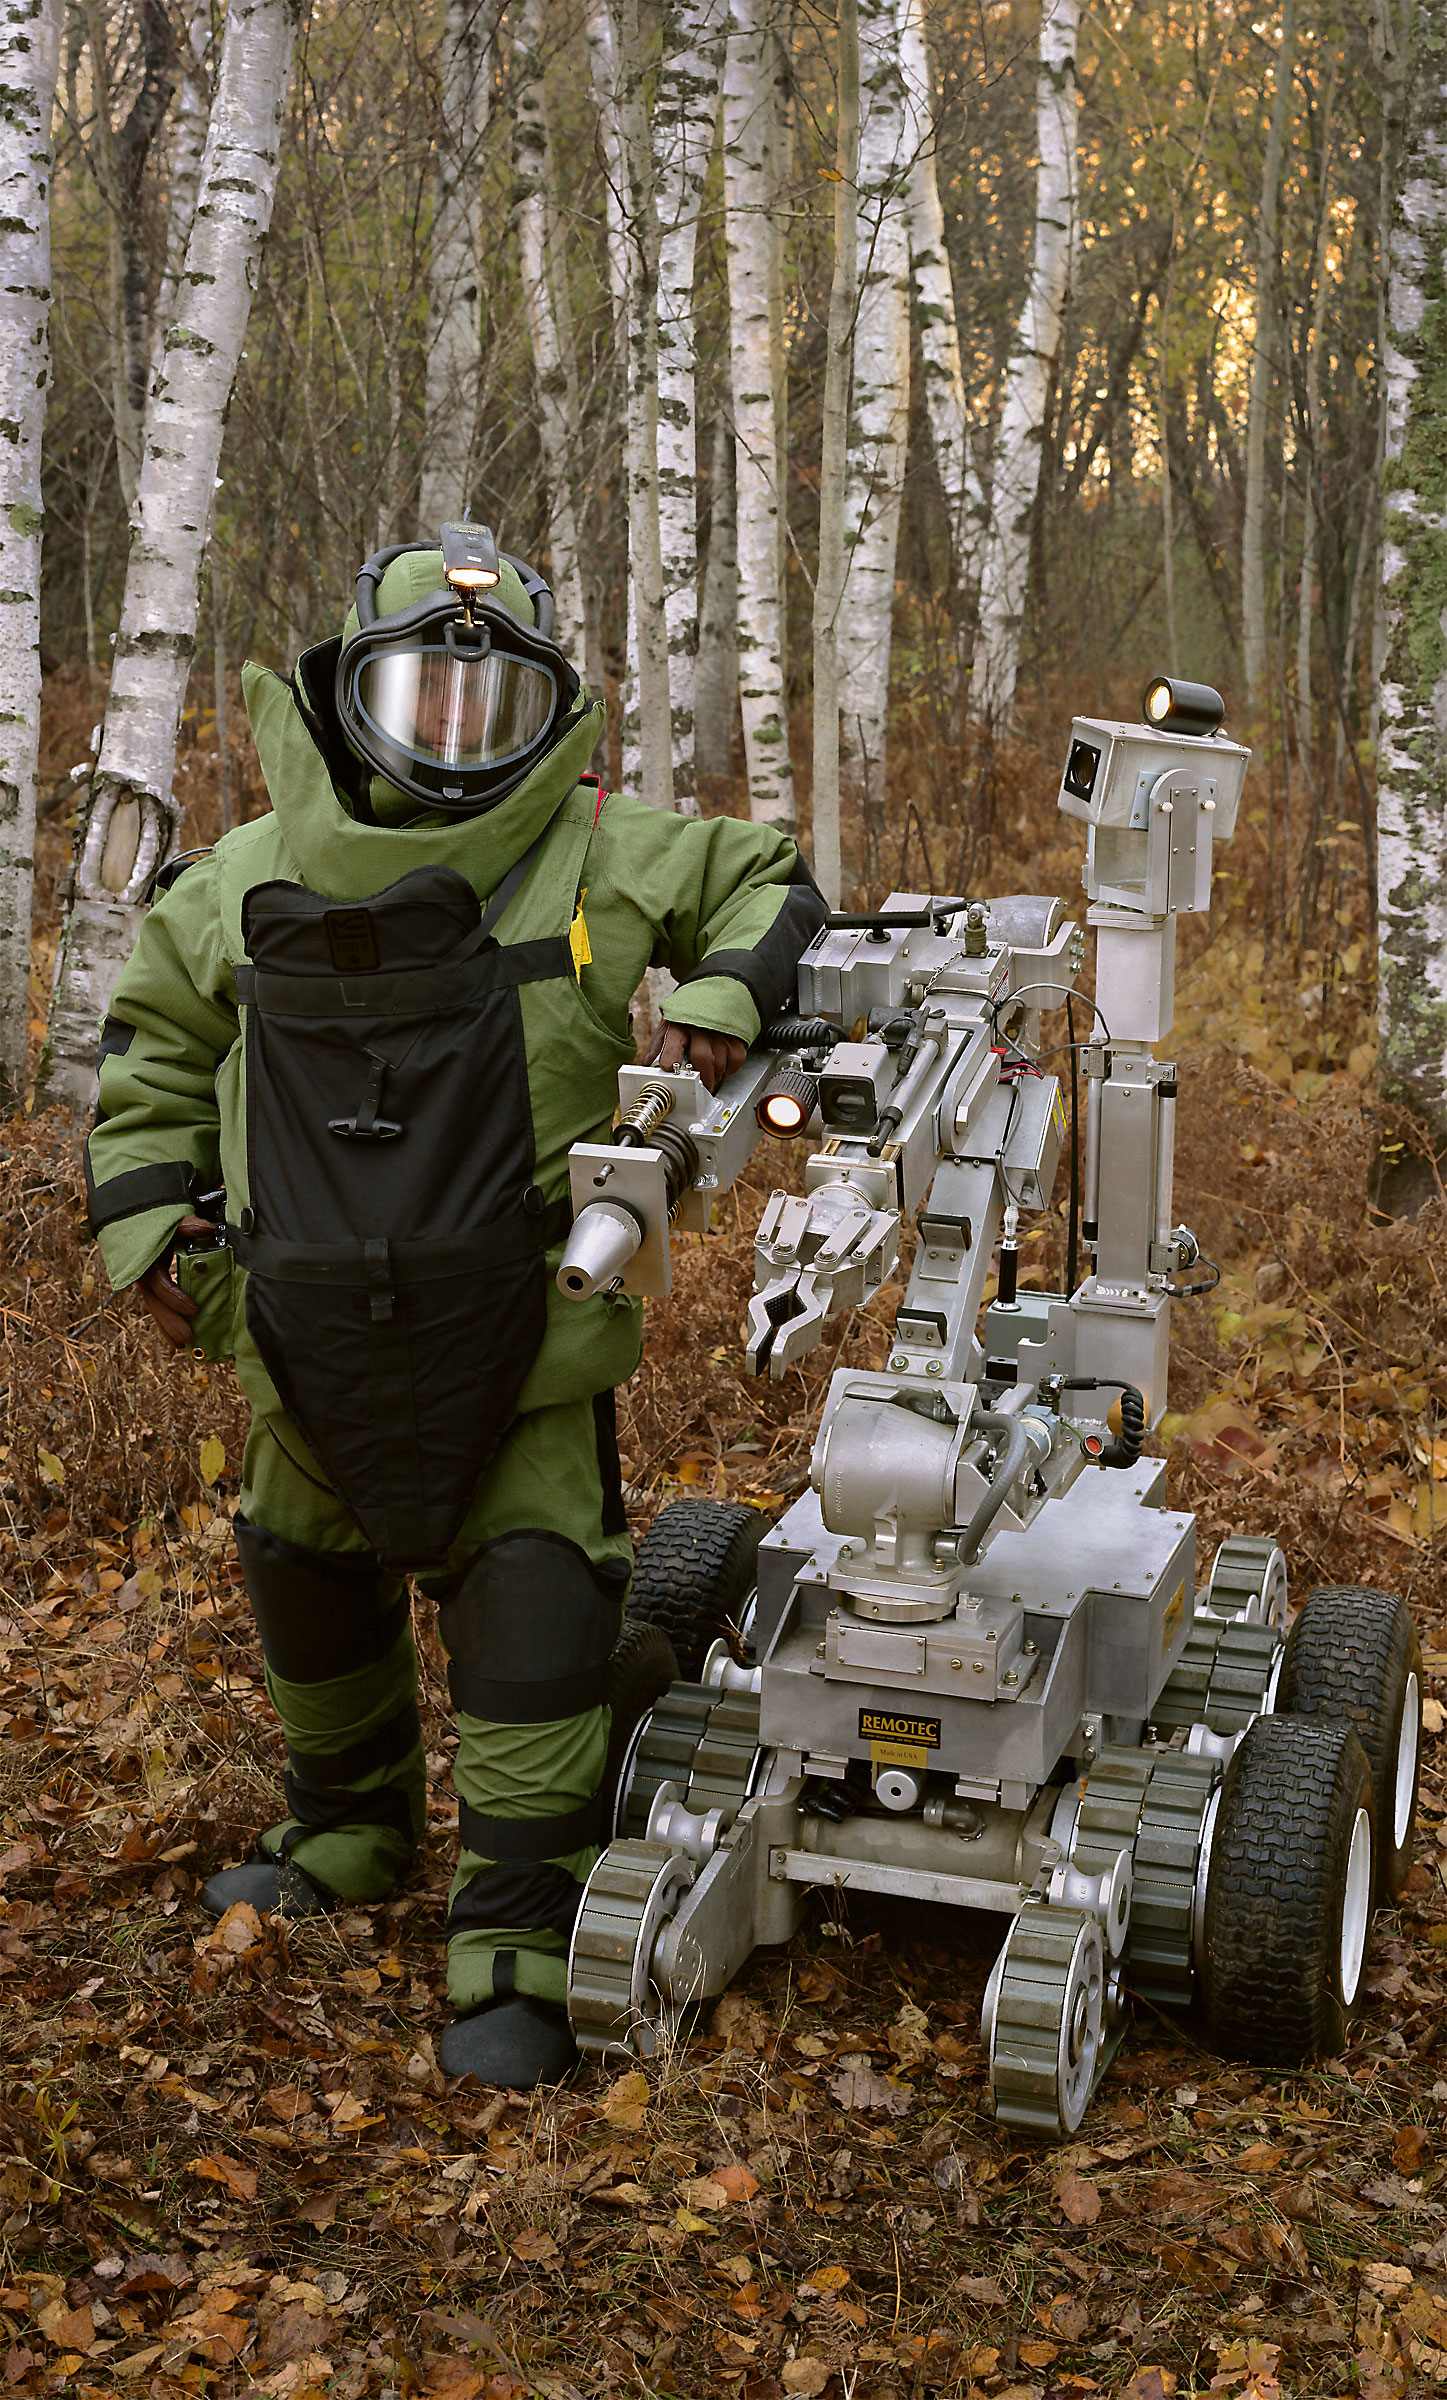 Bomb suit, robot. (148th Explosive Ordnance Disposal (EOD), Minnesota Air National Guard, Duluth, MN) 2005.